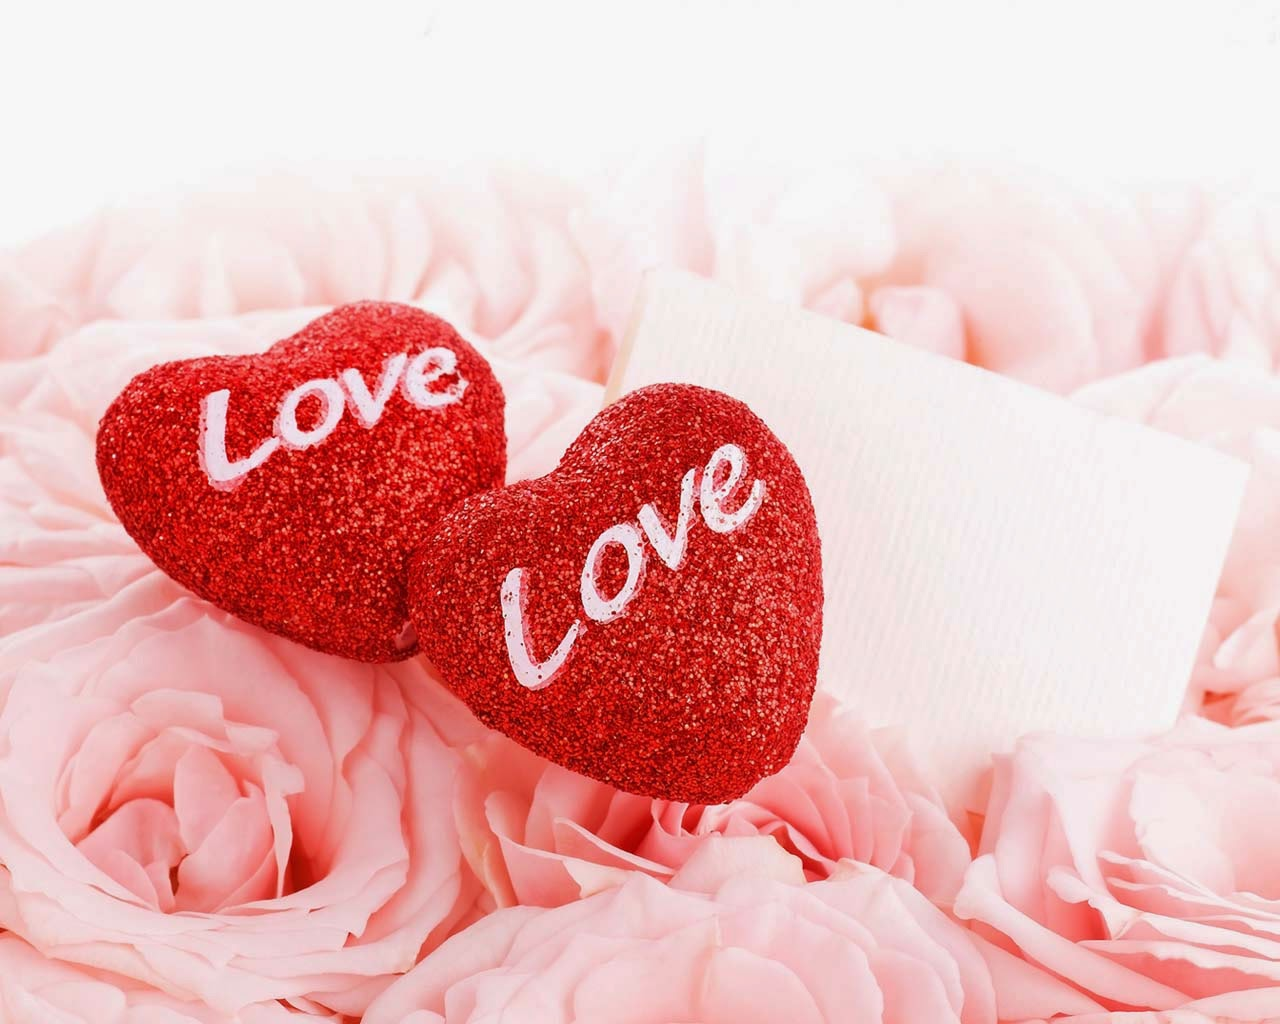 Love Wallpapers Nice : Nice Love Images Wallpapers (51 Wallpapers) Adorable Wallpapers